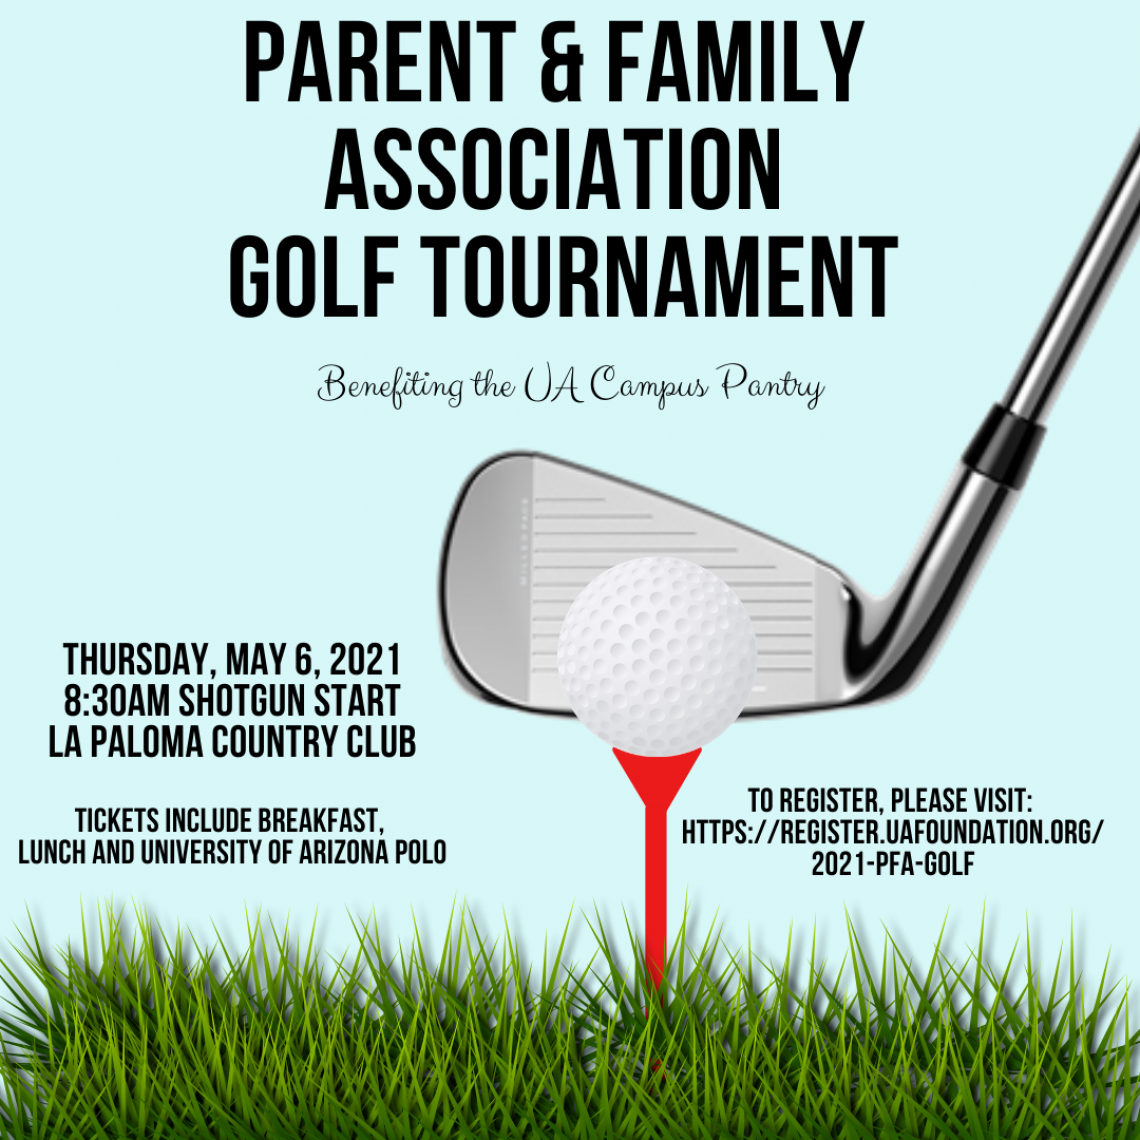 Campus Pantry Golf Tournament Flyer